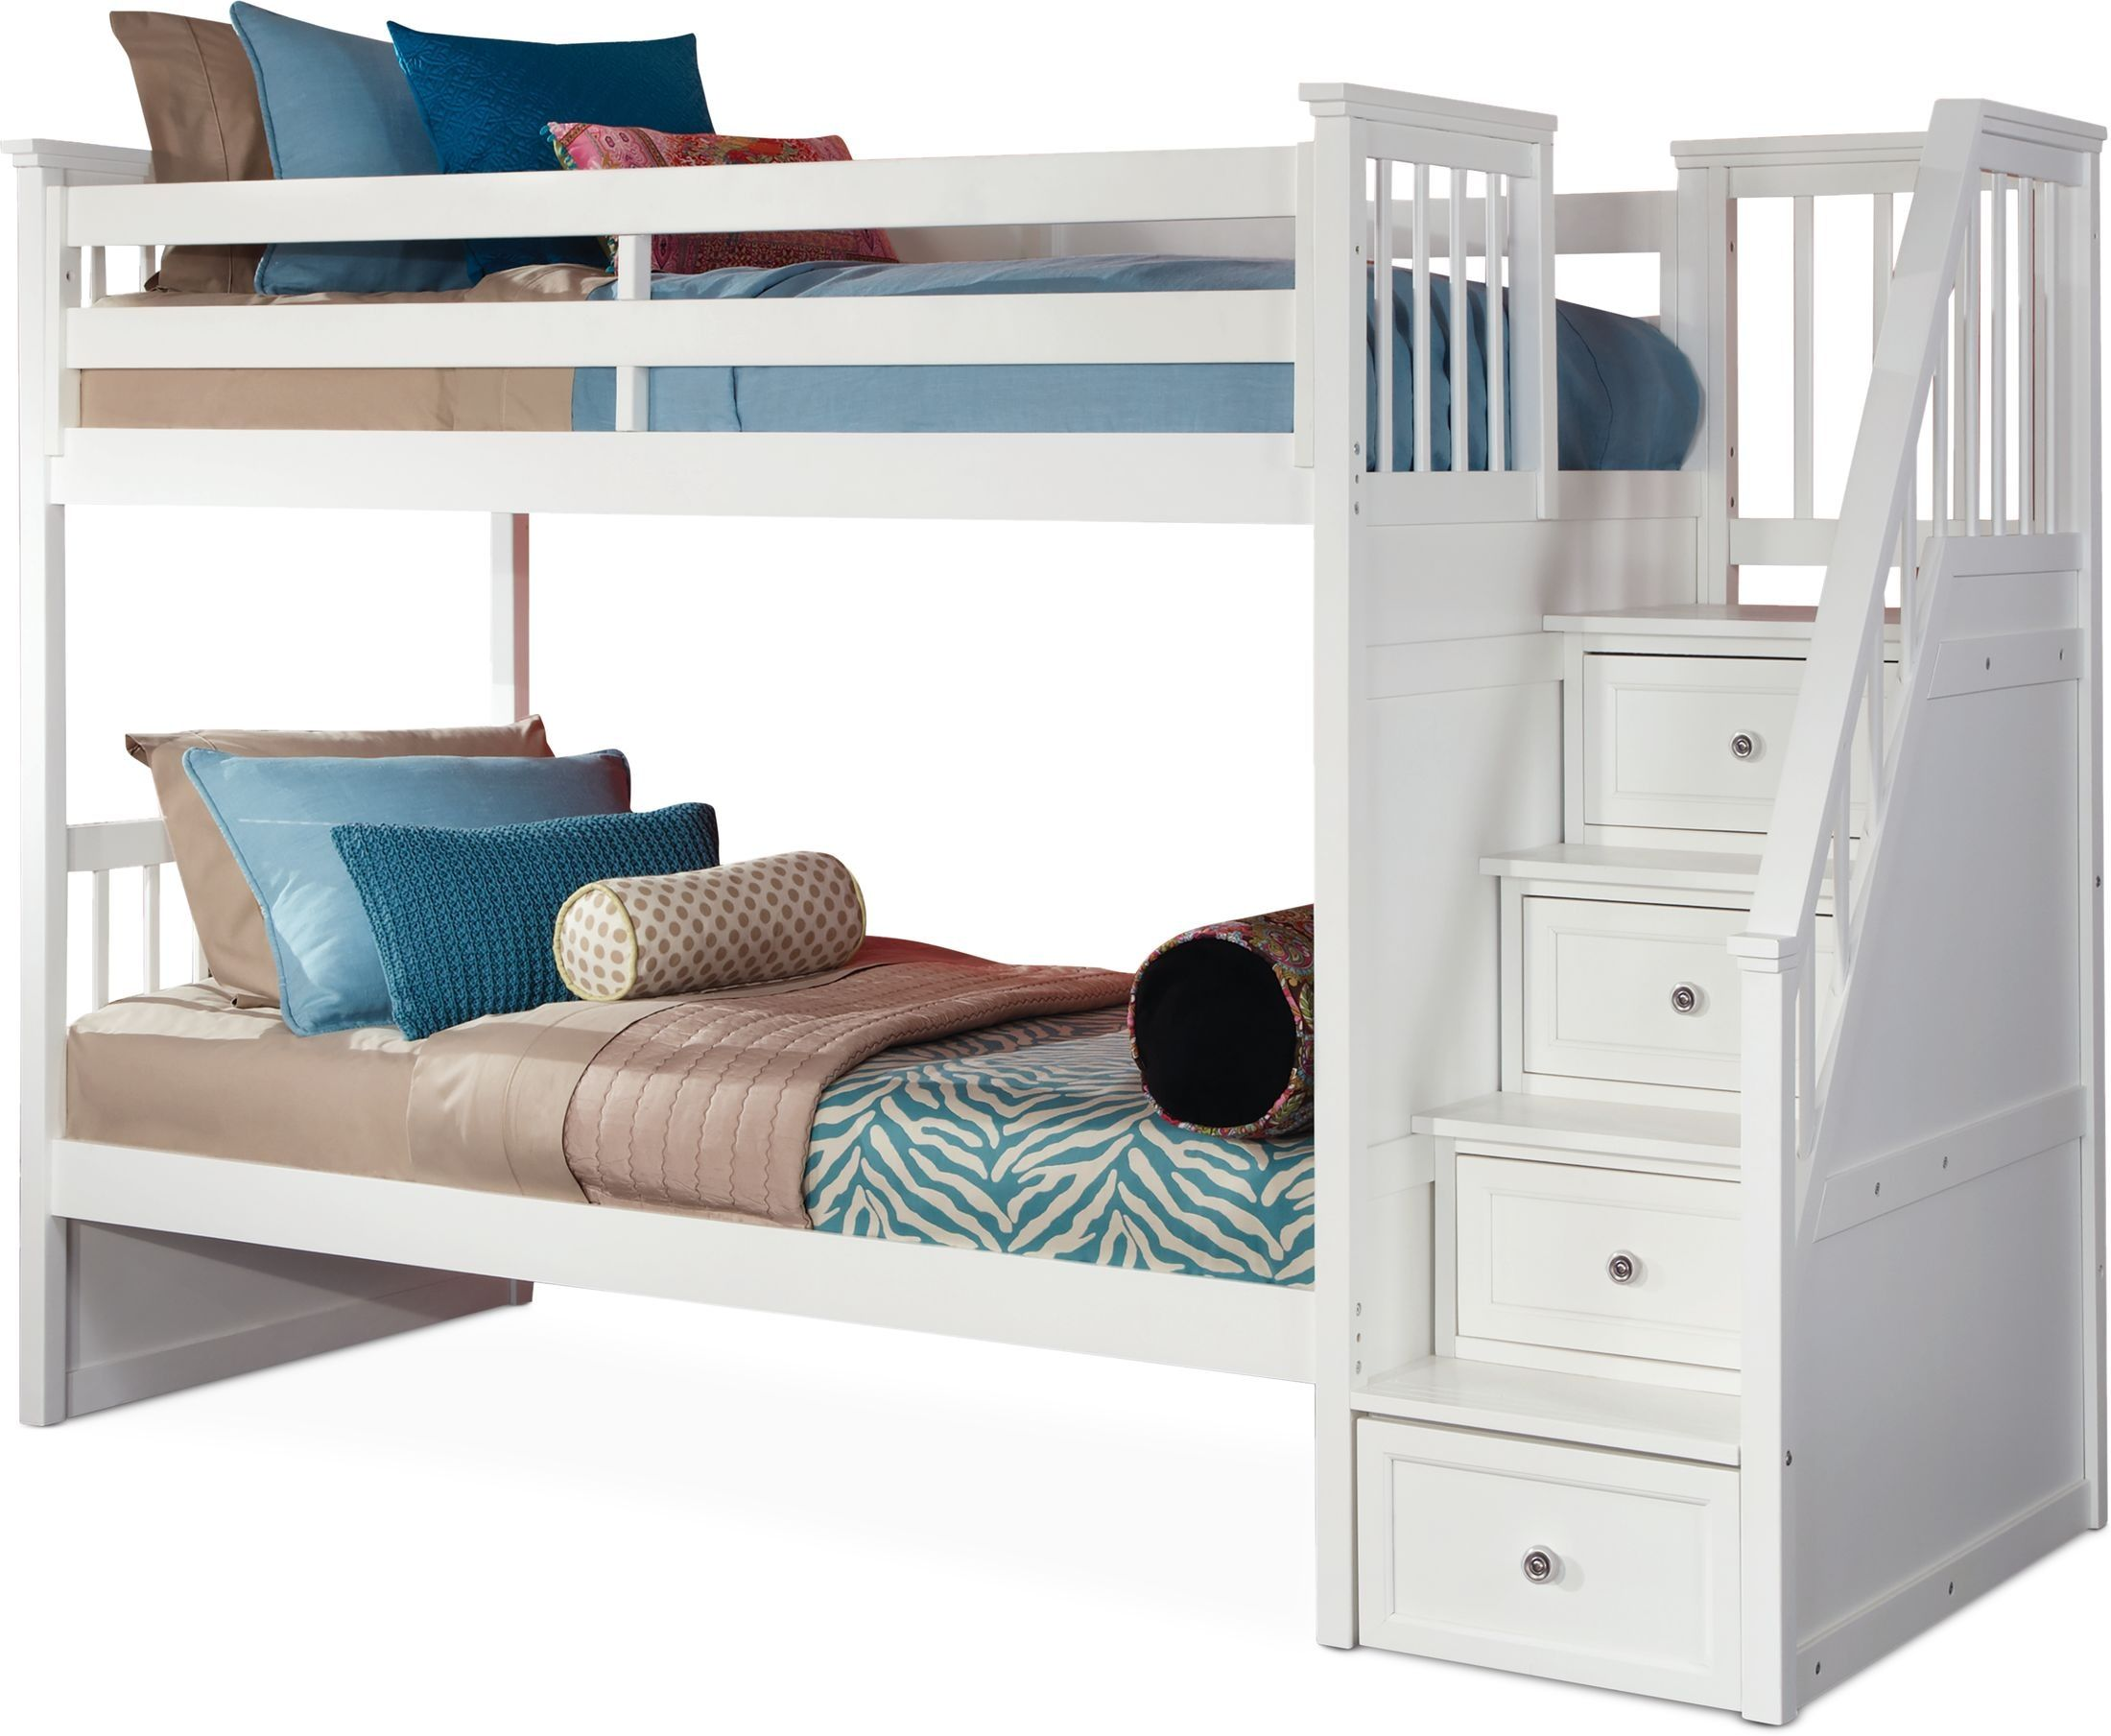 Flynn Twin Over Twin Bunk Bed With Storage Stairs White Bunk Beds With Storage Bunk Bed With Storage Twin Bunk Beds Twin over twin bunk beds with storage